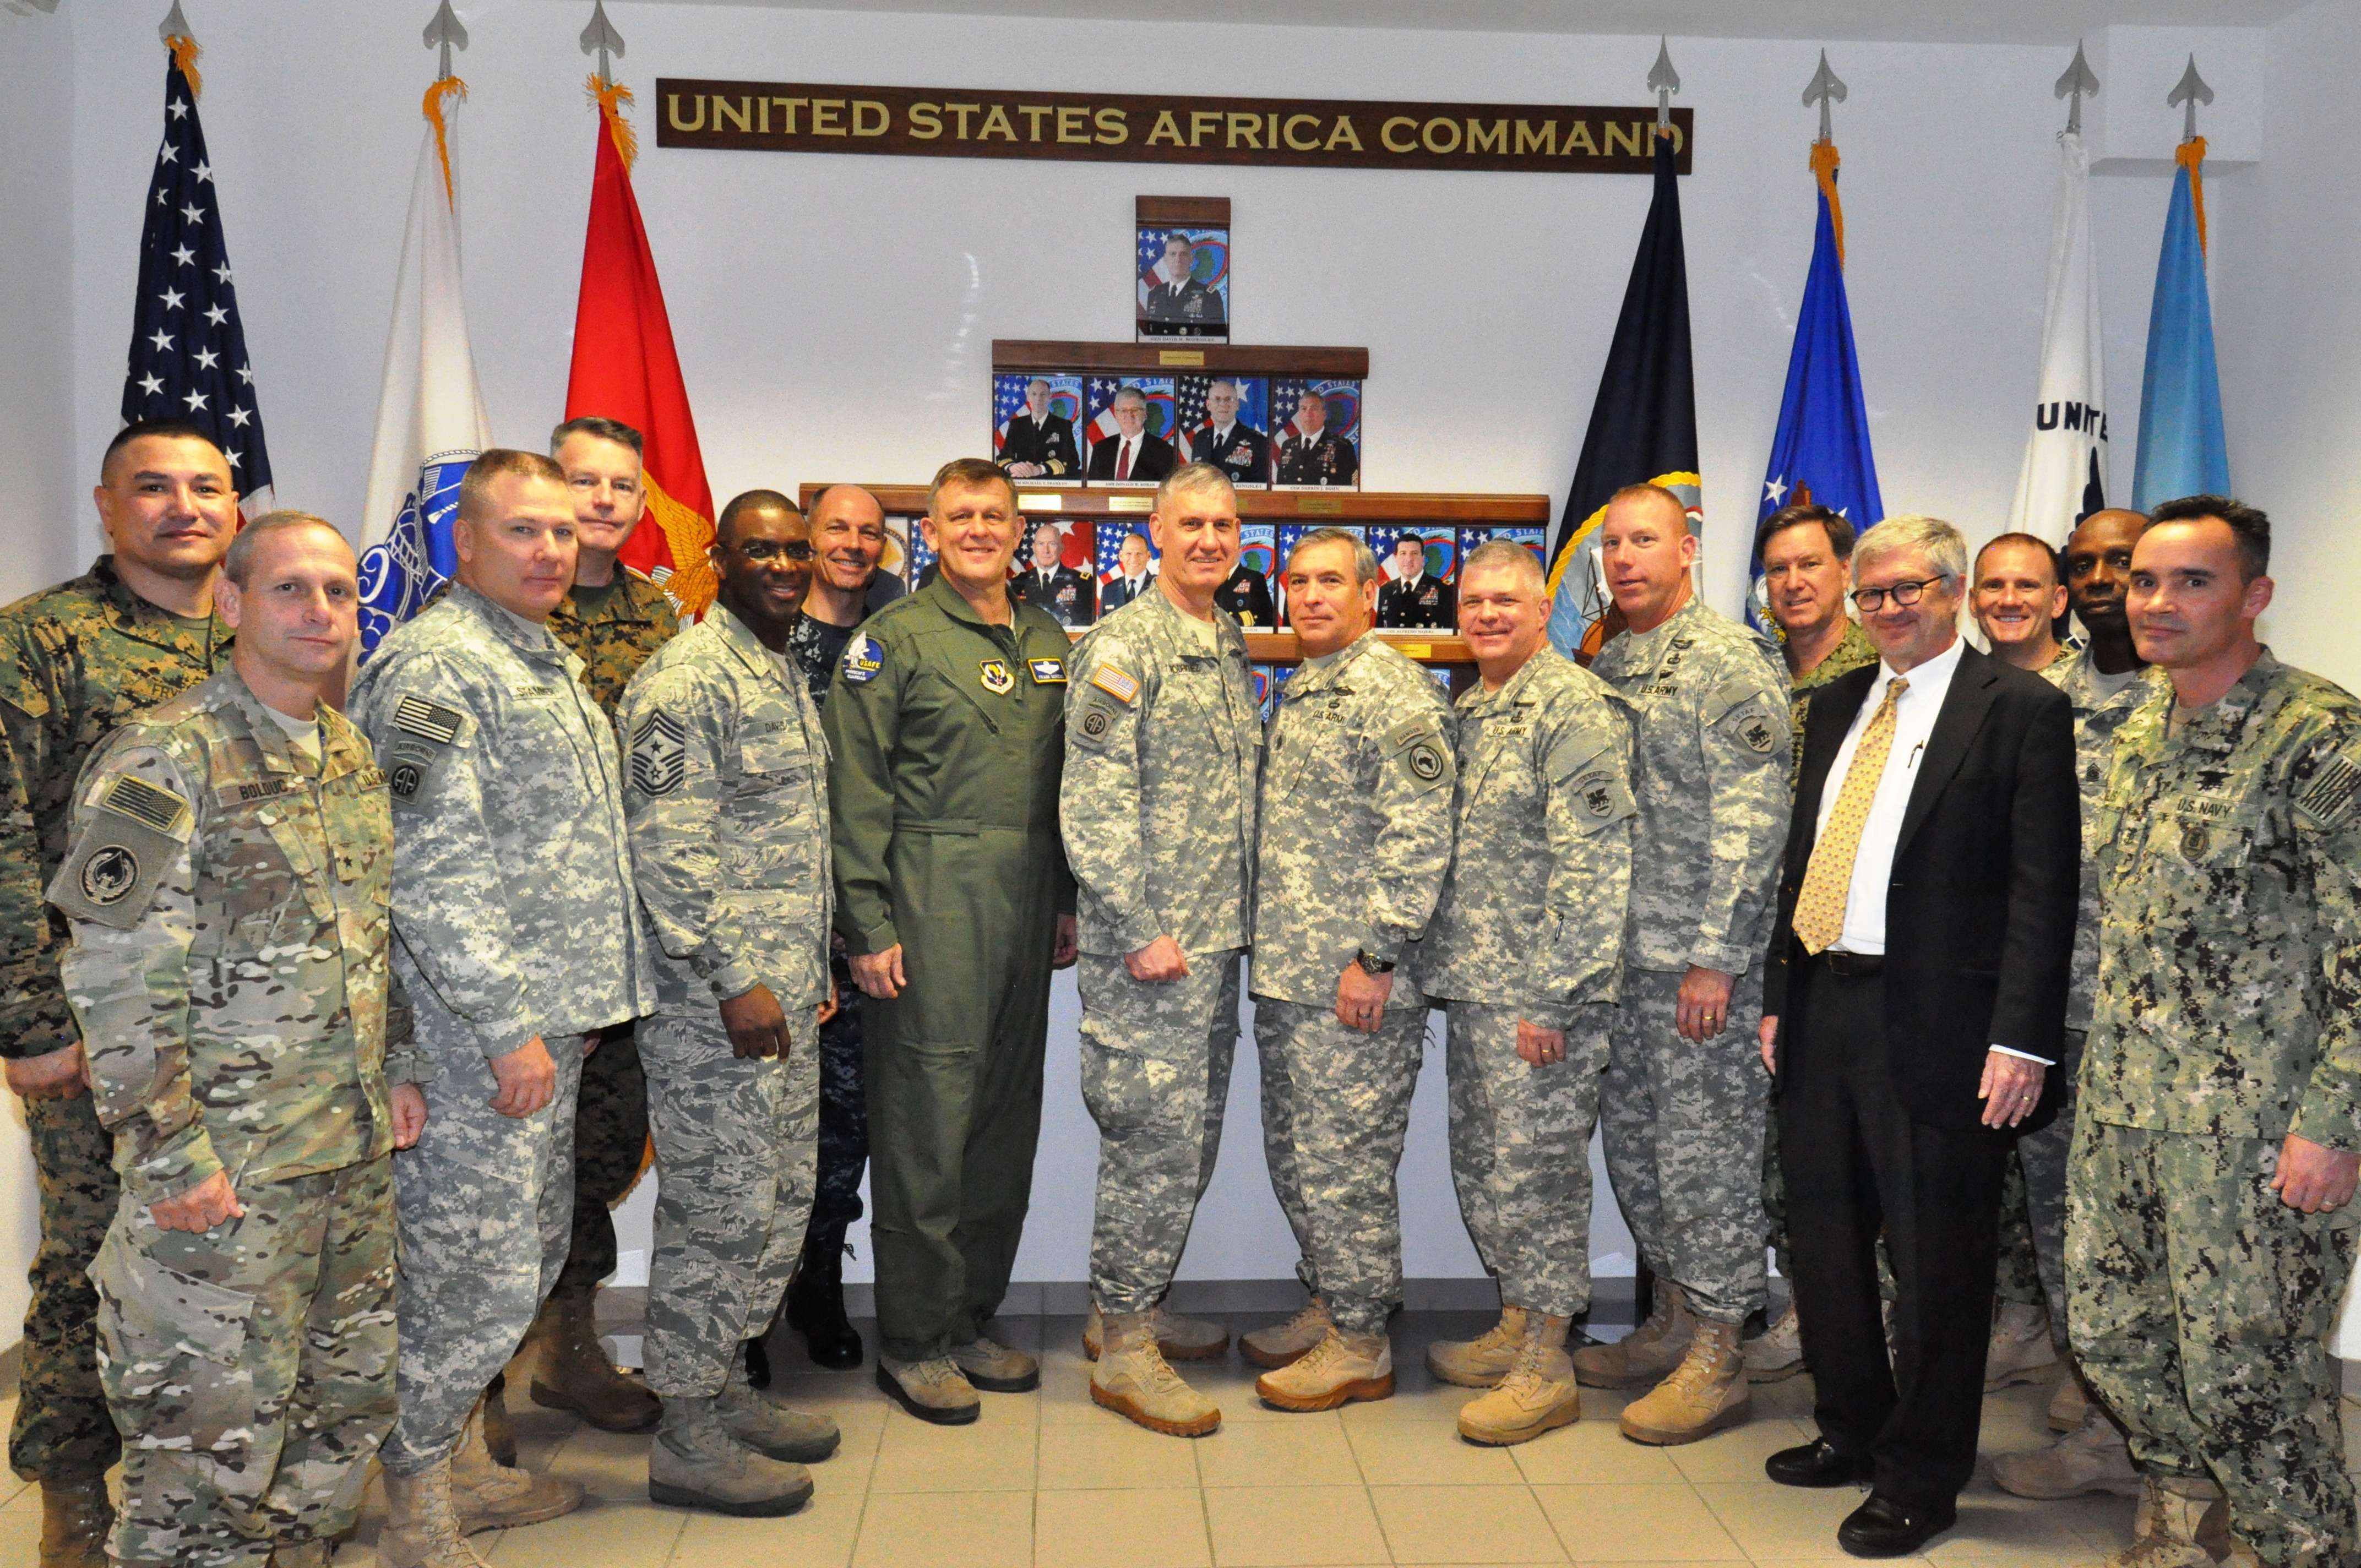 Commanders and senior enlisted leaders from U.S. Africa Command and its component commands pose for a group photo at AFRICOM headquarters in Stuttgart, Germany Nov. 17, 2015. Nearly 100 senior leaders from across the command met for the annual AFRICOM Combatant Commanders Conference.